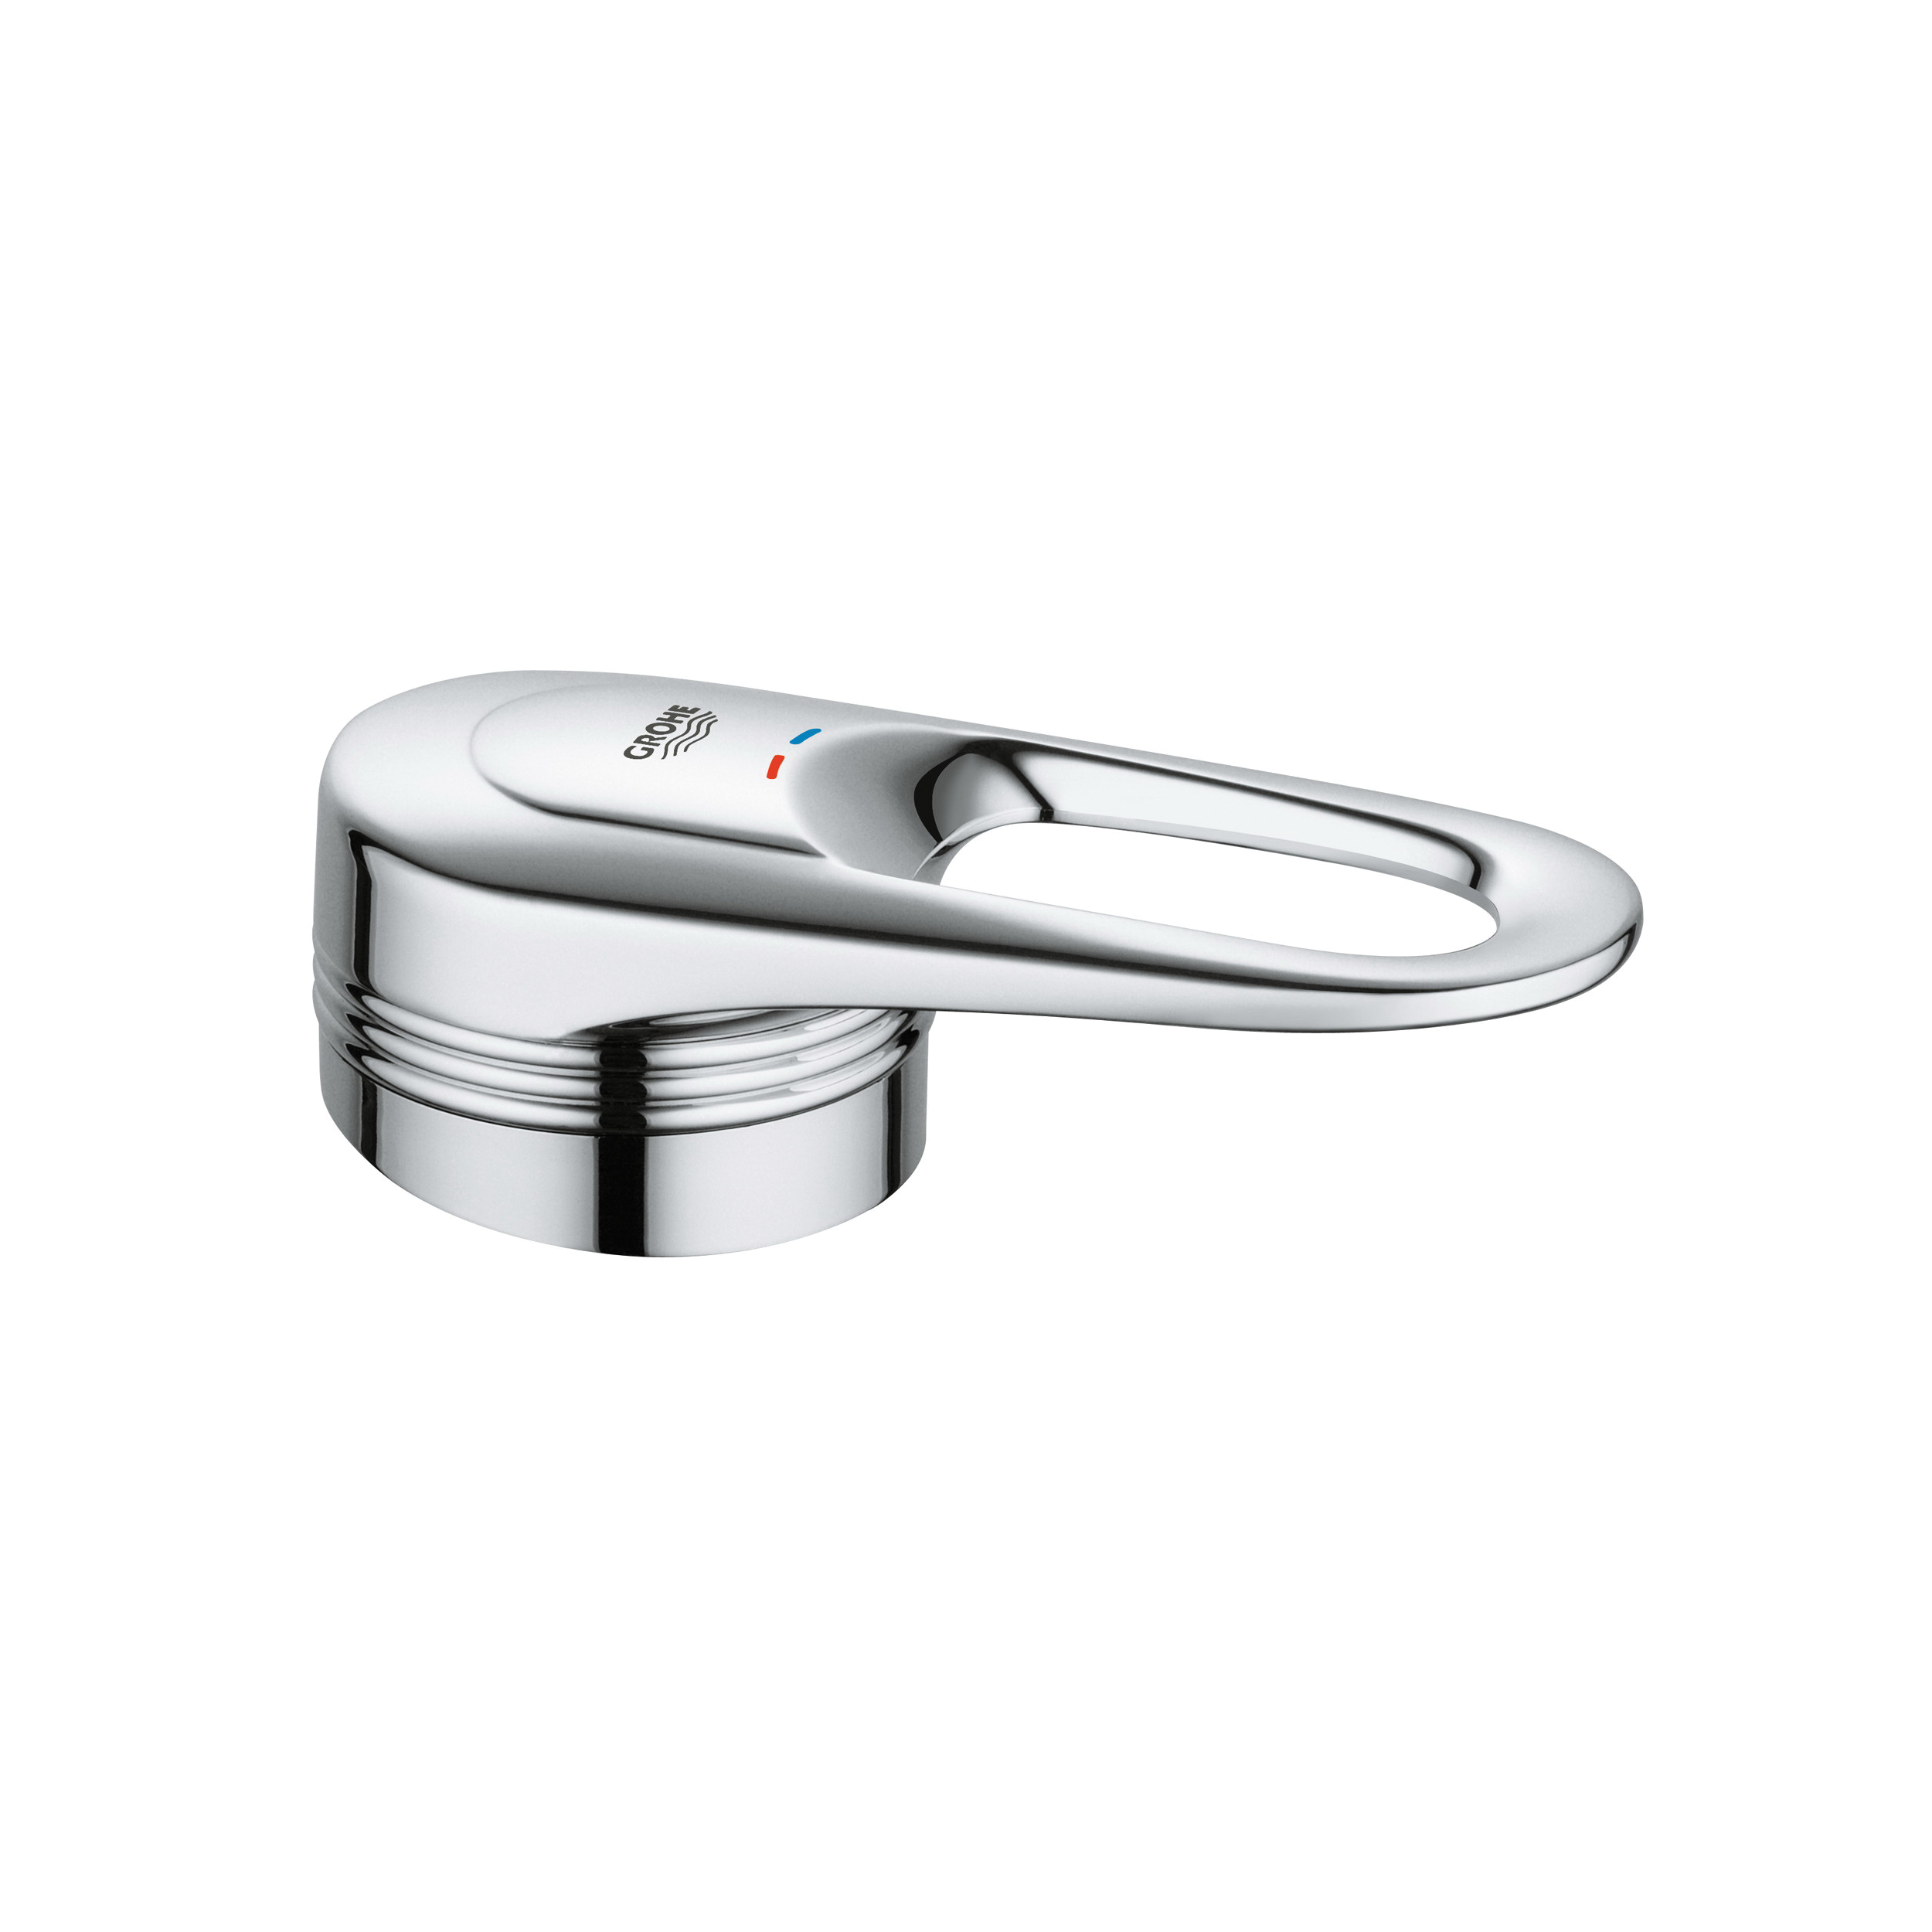 GROHE 46415000 Complete Lever Handle, Metal, StarLight® Chrome, Import